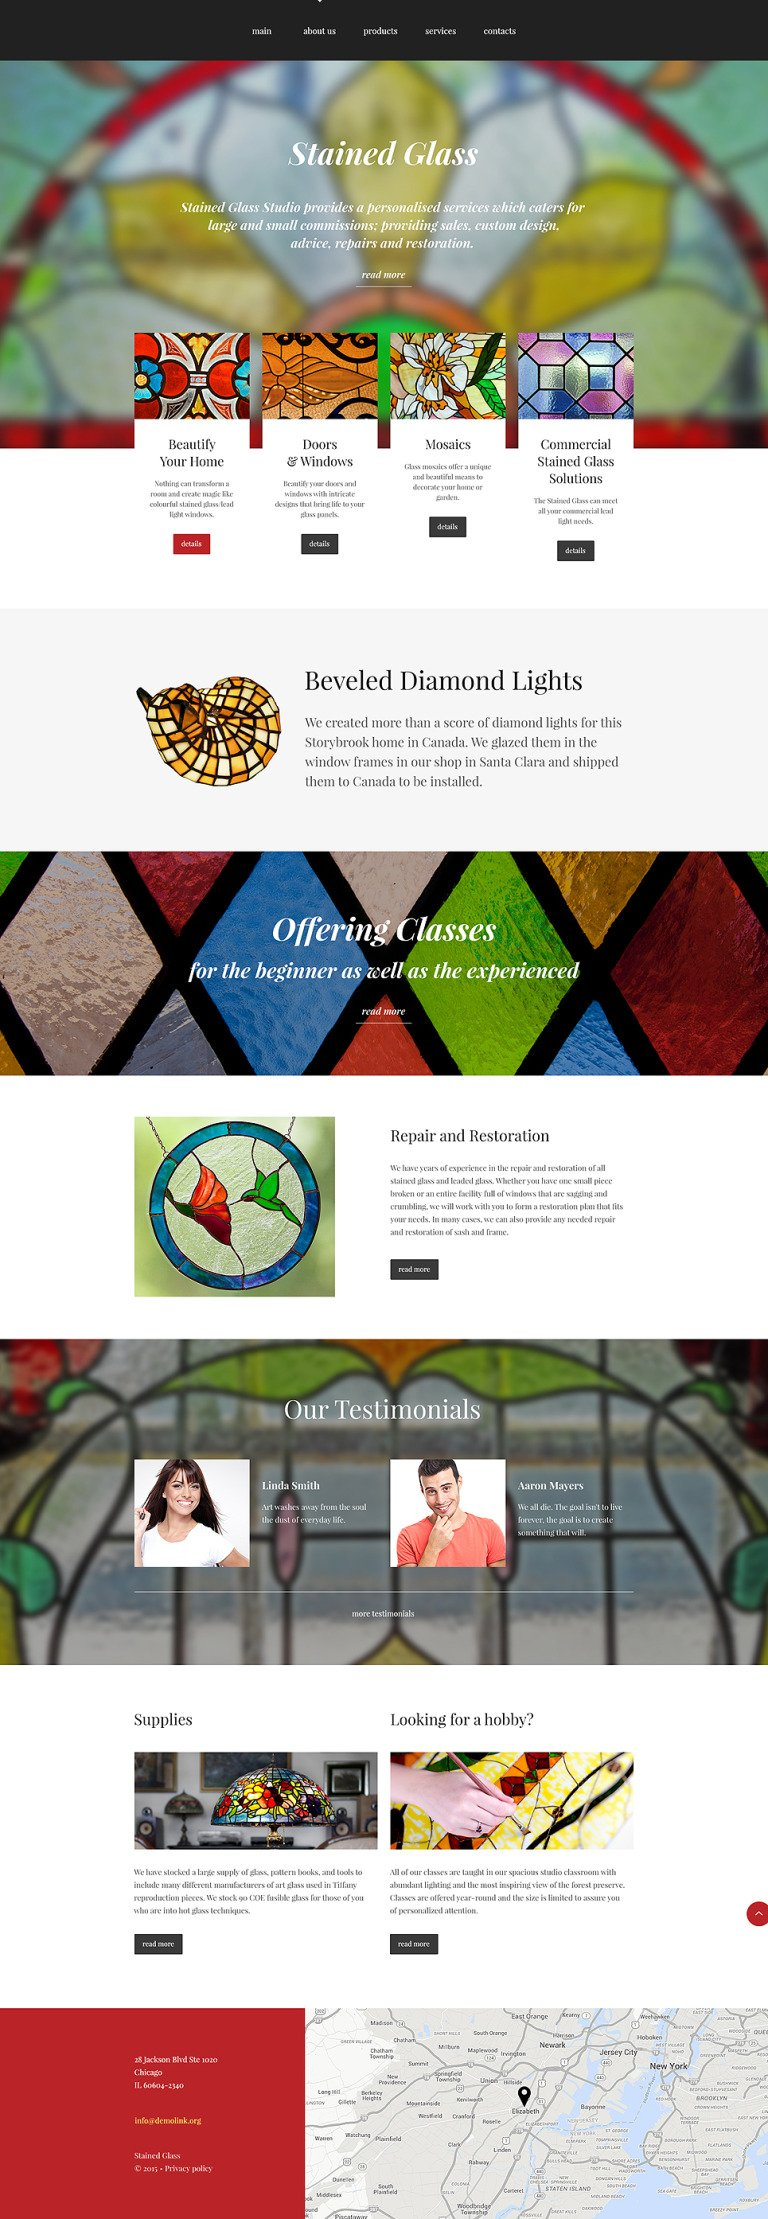 Stained Glass Studio Website Template New Screenshots BIG